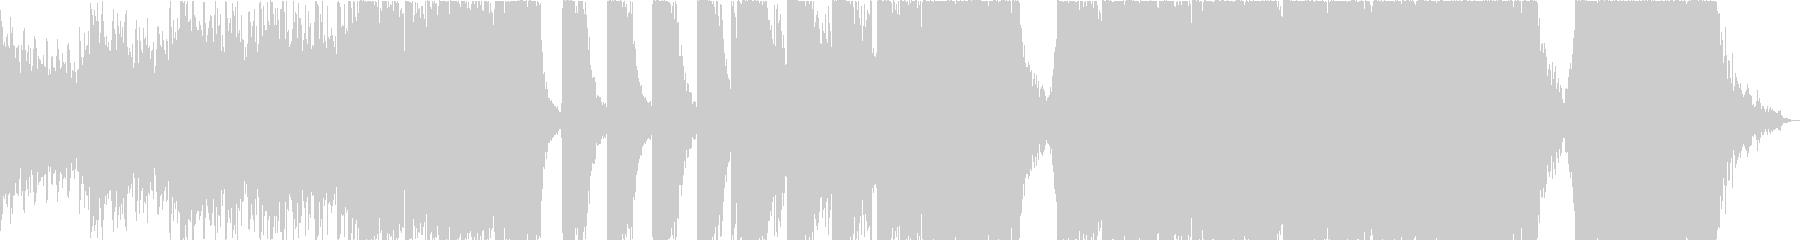 Epic Trailer's unreproduced waveform